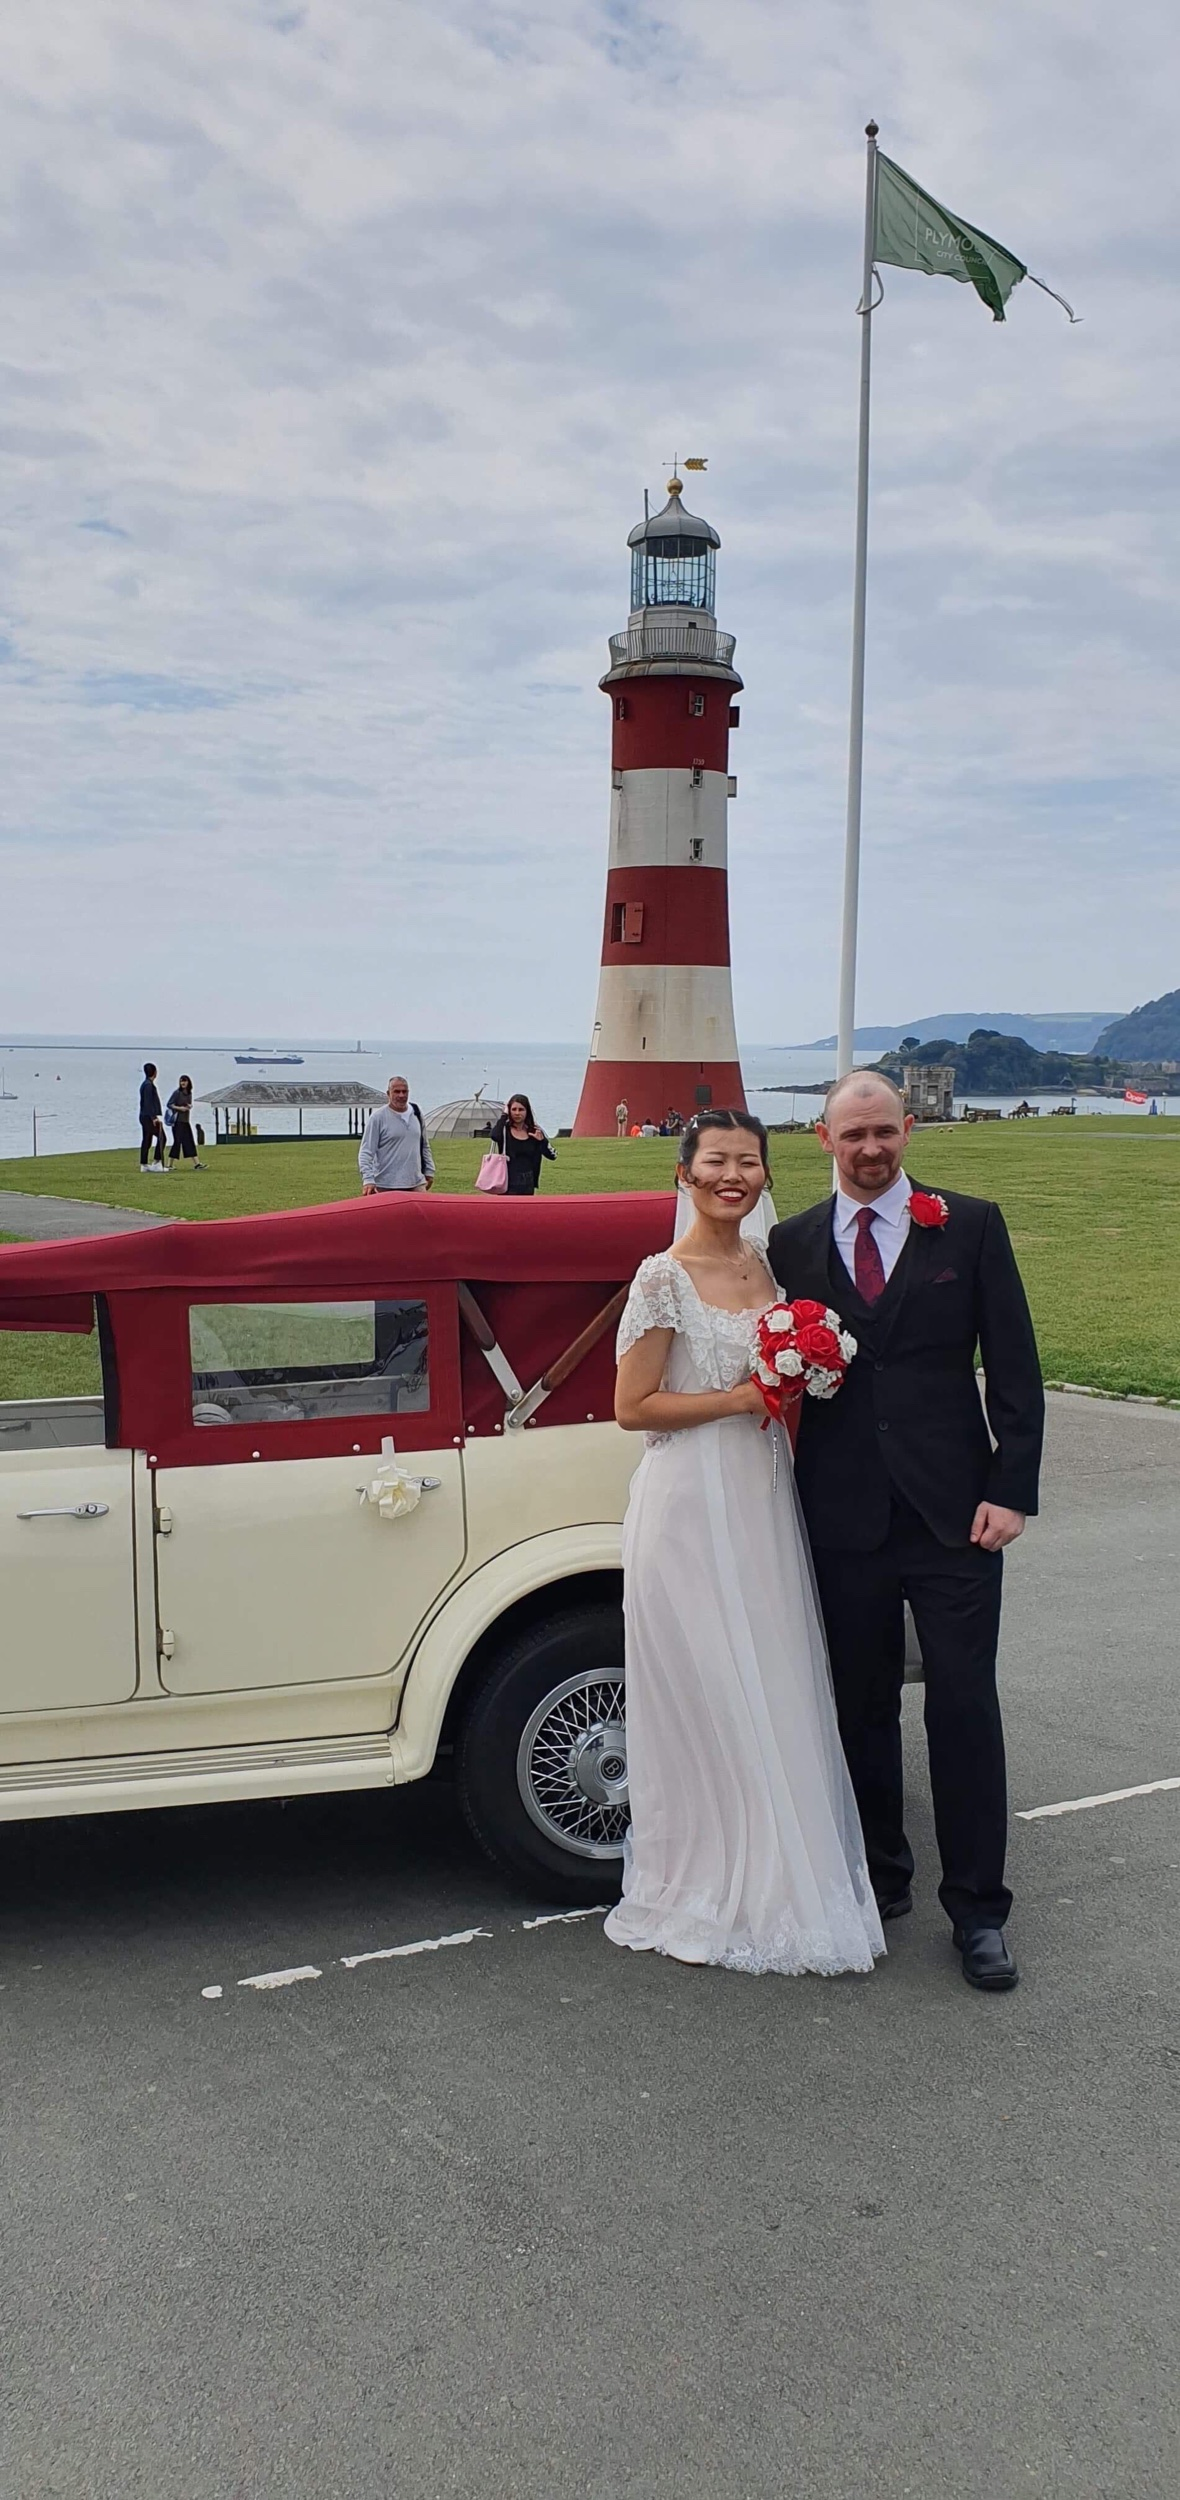 Martin & Michelle from Plymouth - Many thanks to you and our driver Paul for helping to make our wedding day perfect. Everything went really well and we really appreciate your being on time and willingness to go to the Hoe for some photos prior to our reception.Thanks again,Martin & Michelle